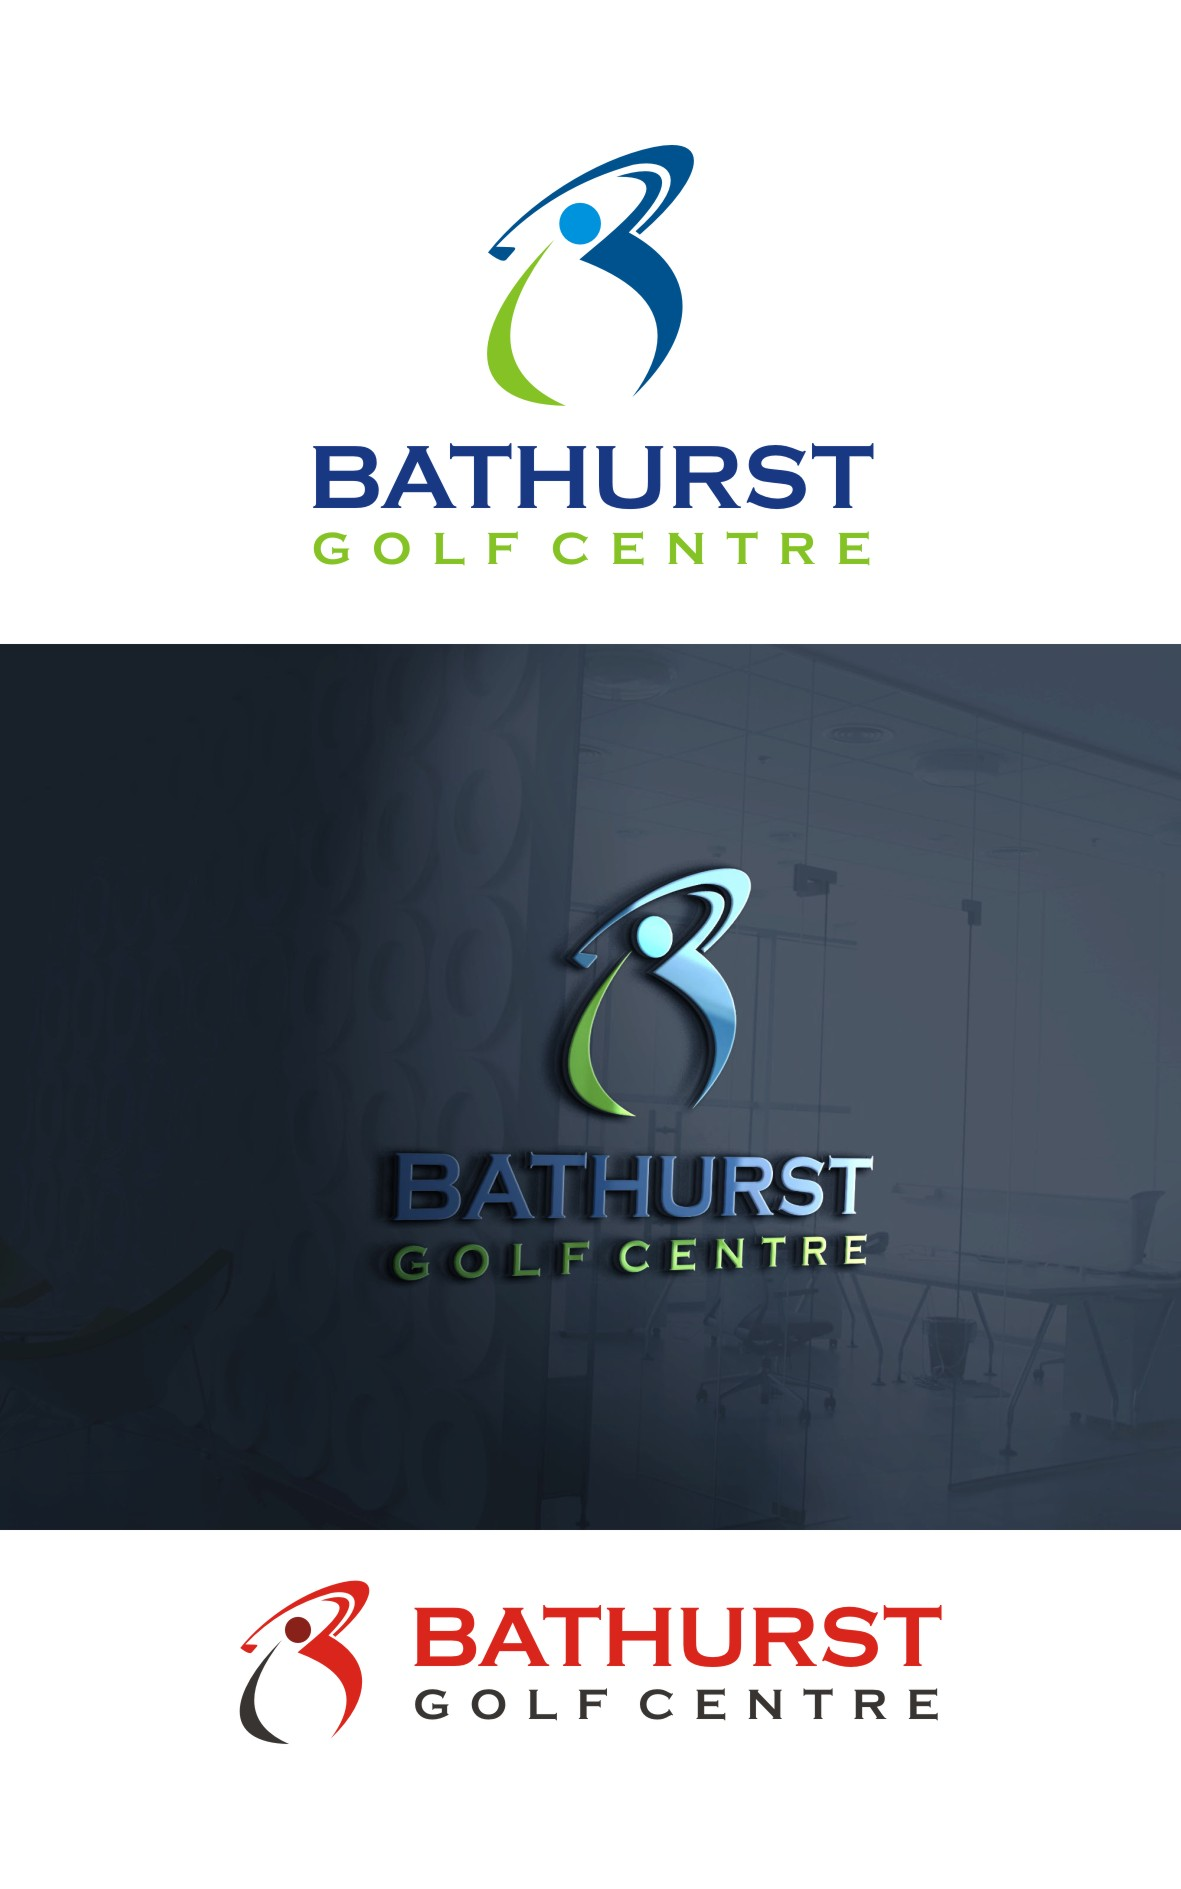 Logo Design by Spider Graphics - Entry No. 99 in the Logo Design Contest Inspiring Logo Design for Bathurst Golf Centre.